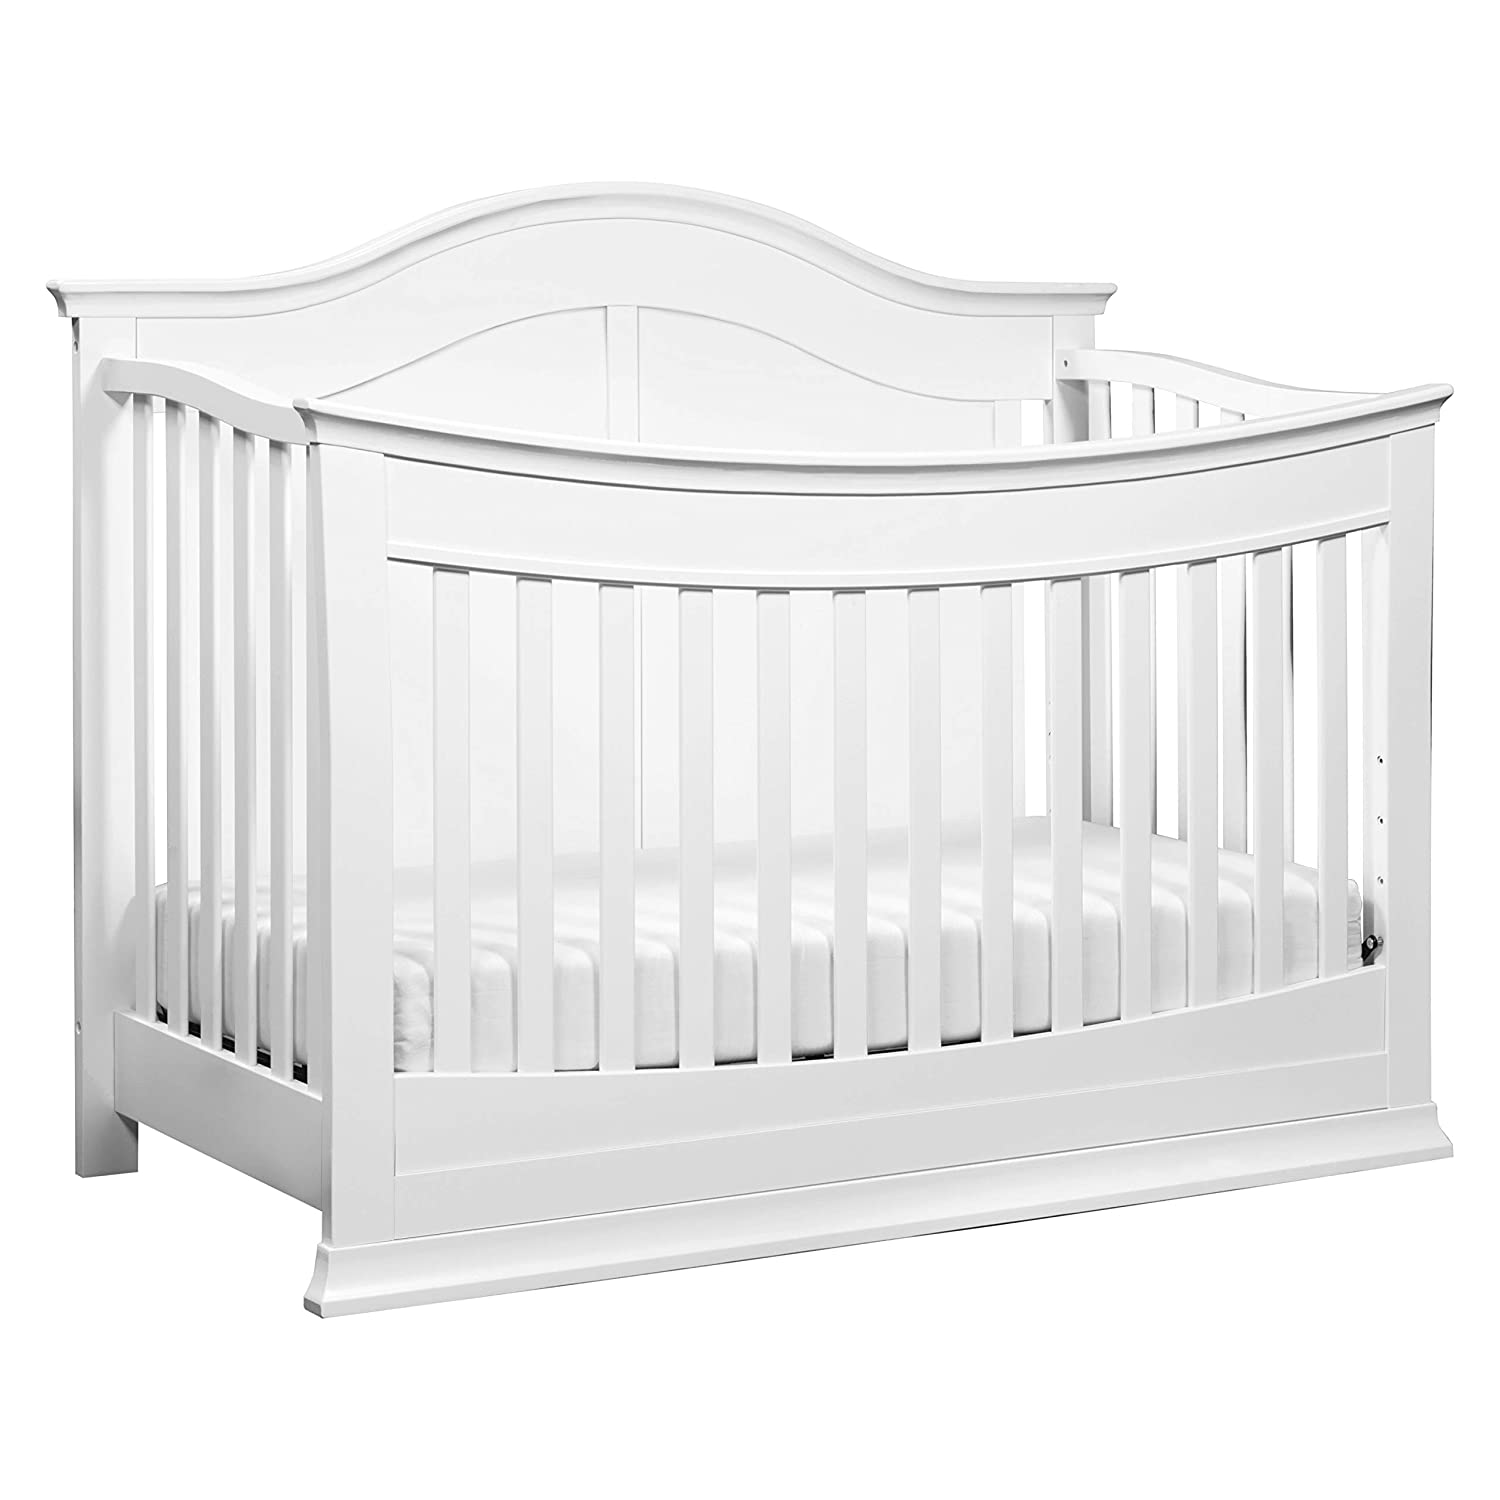 DaVinci Meadow 4-in-1 Convertible Crib with Toddler Bed Conversion Kit in White Greenguard Gold Certified